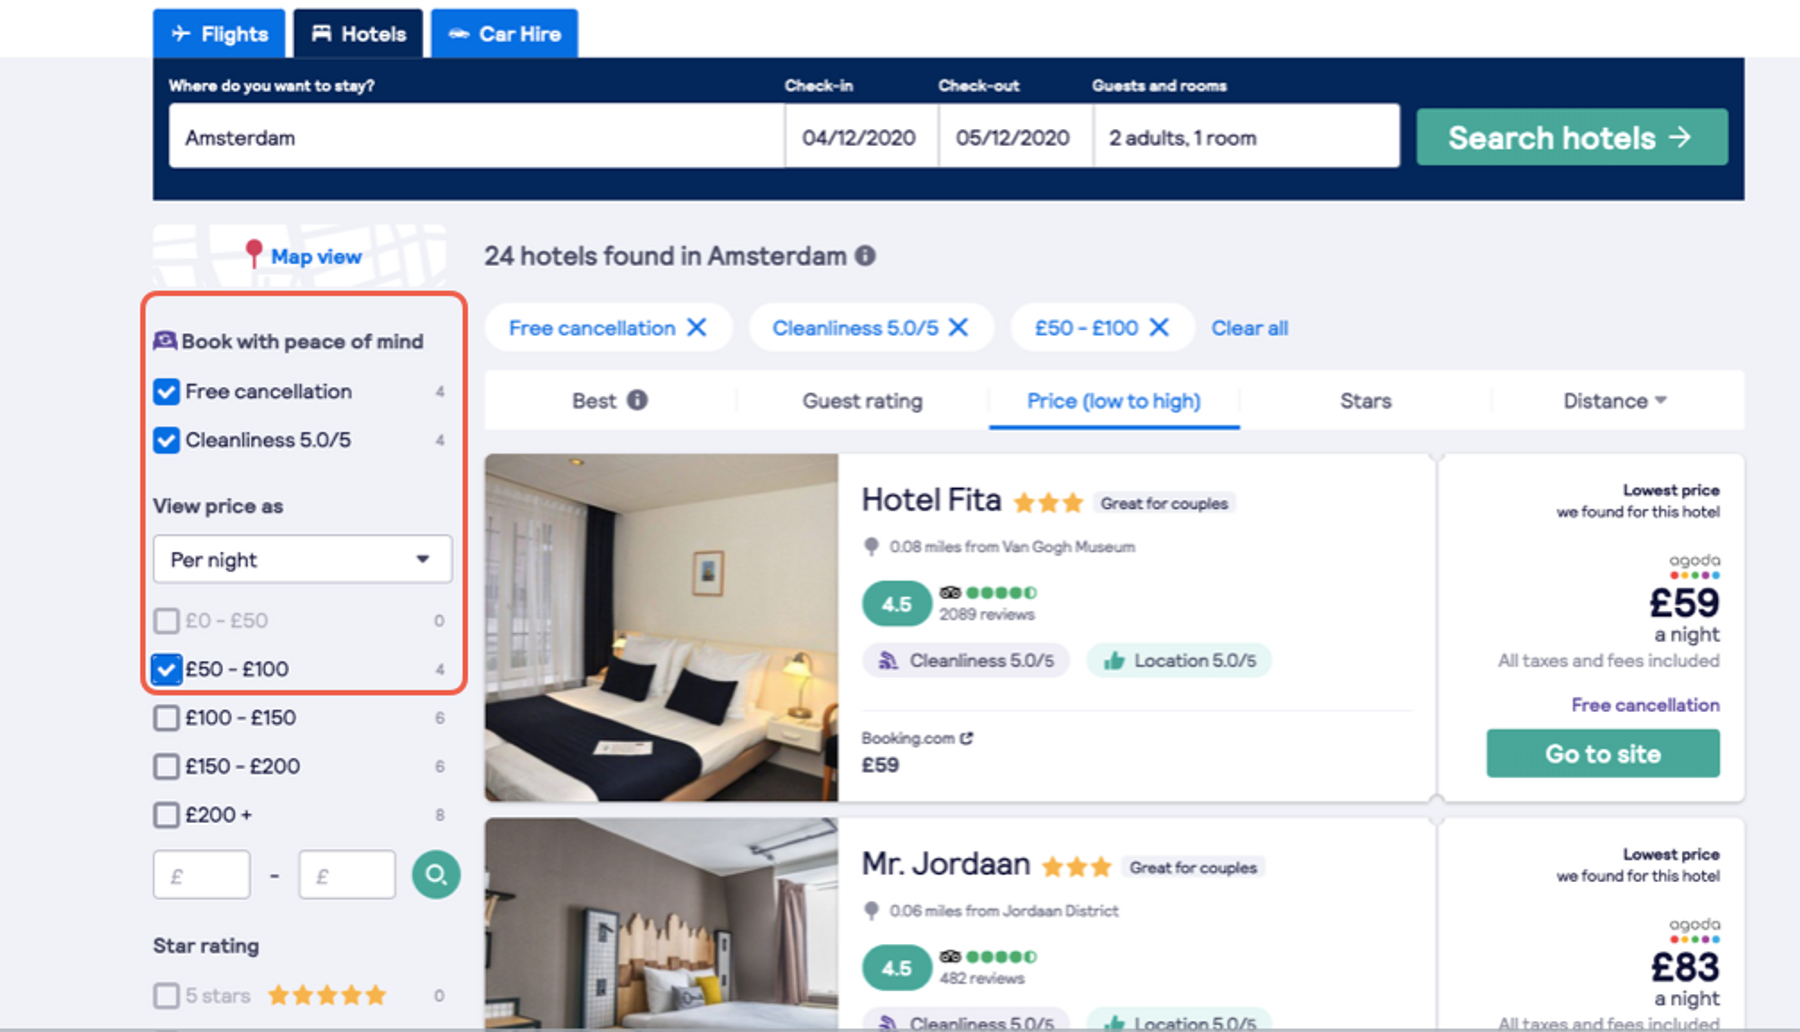 Travel safer and smarter by filtering hotels based on free cancelation and cleanliness score